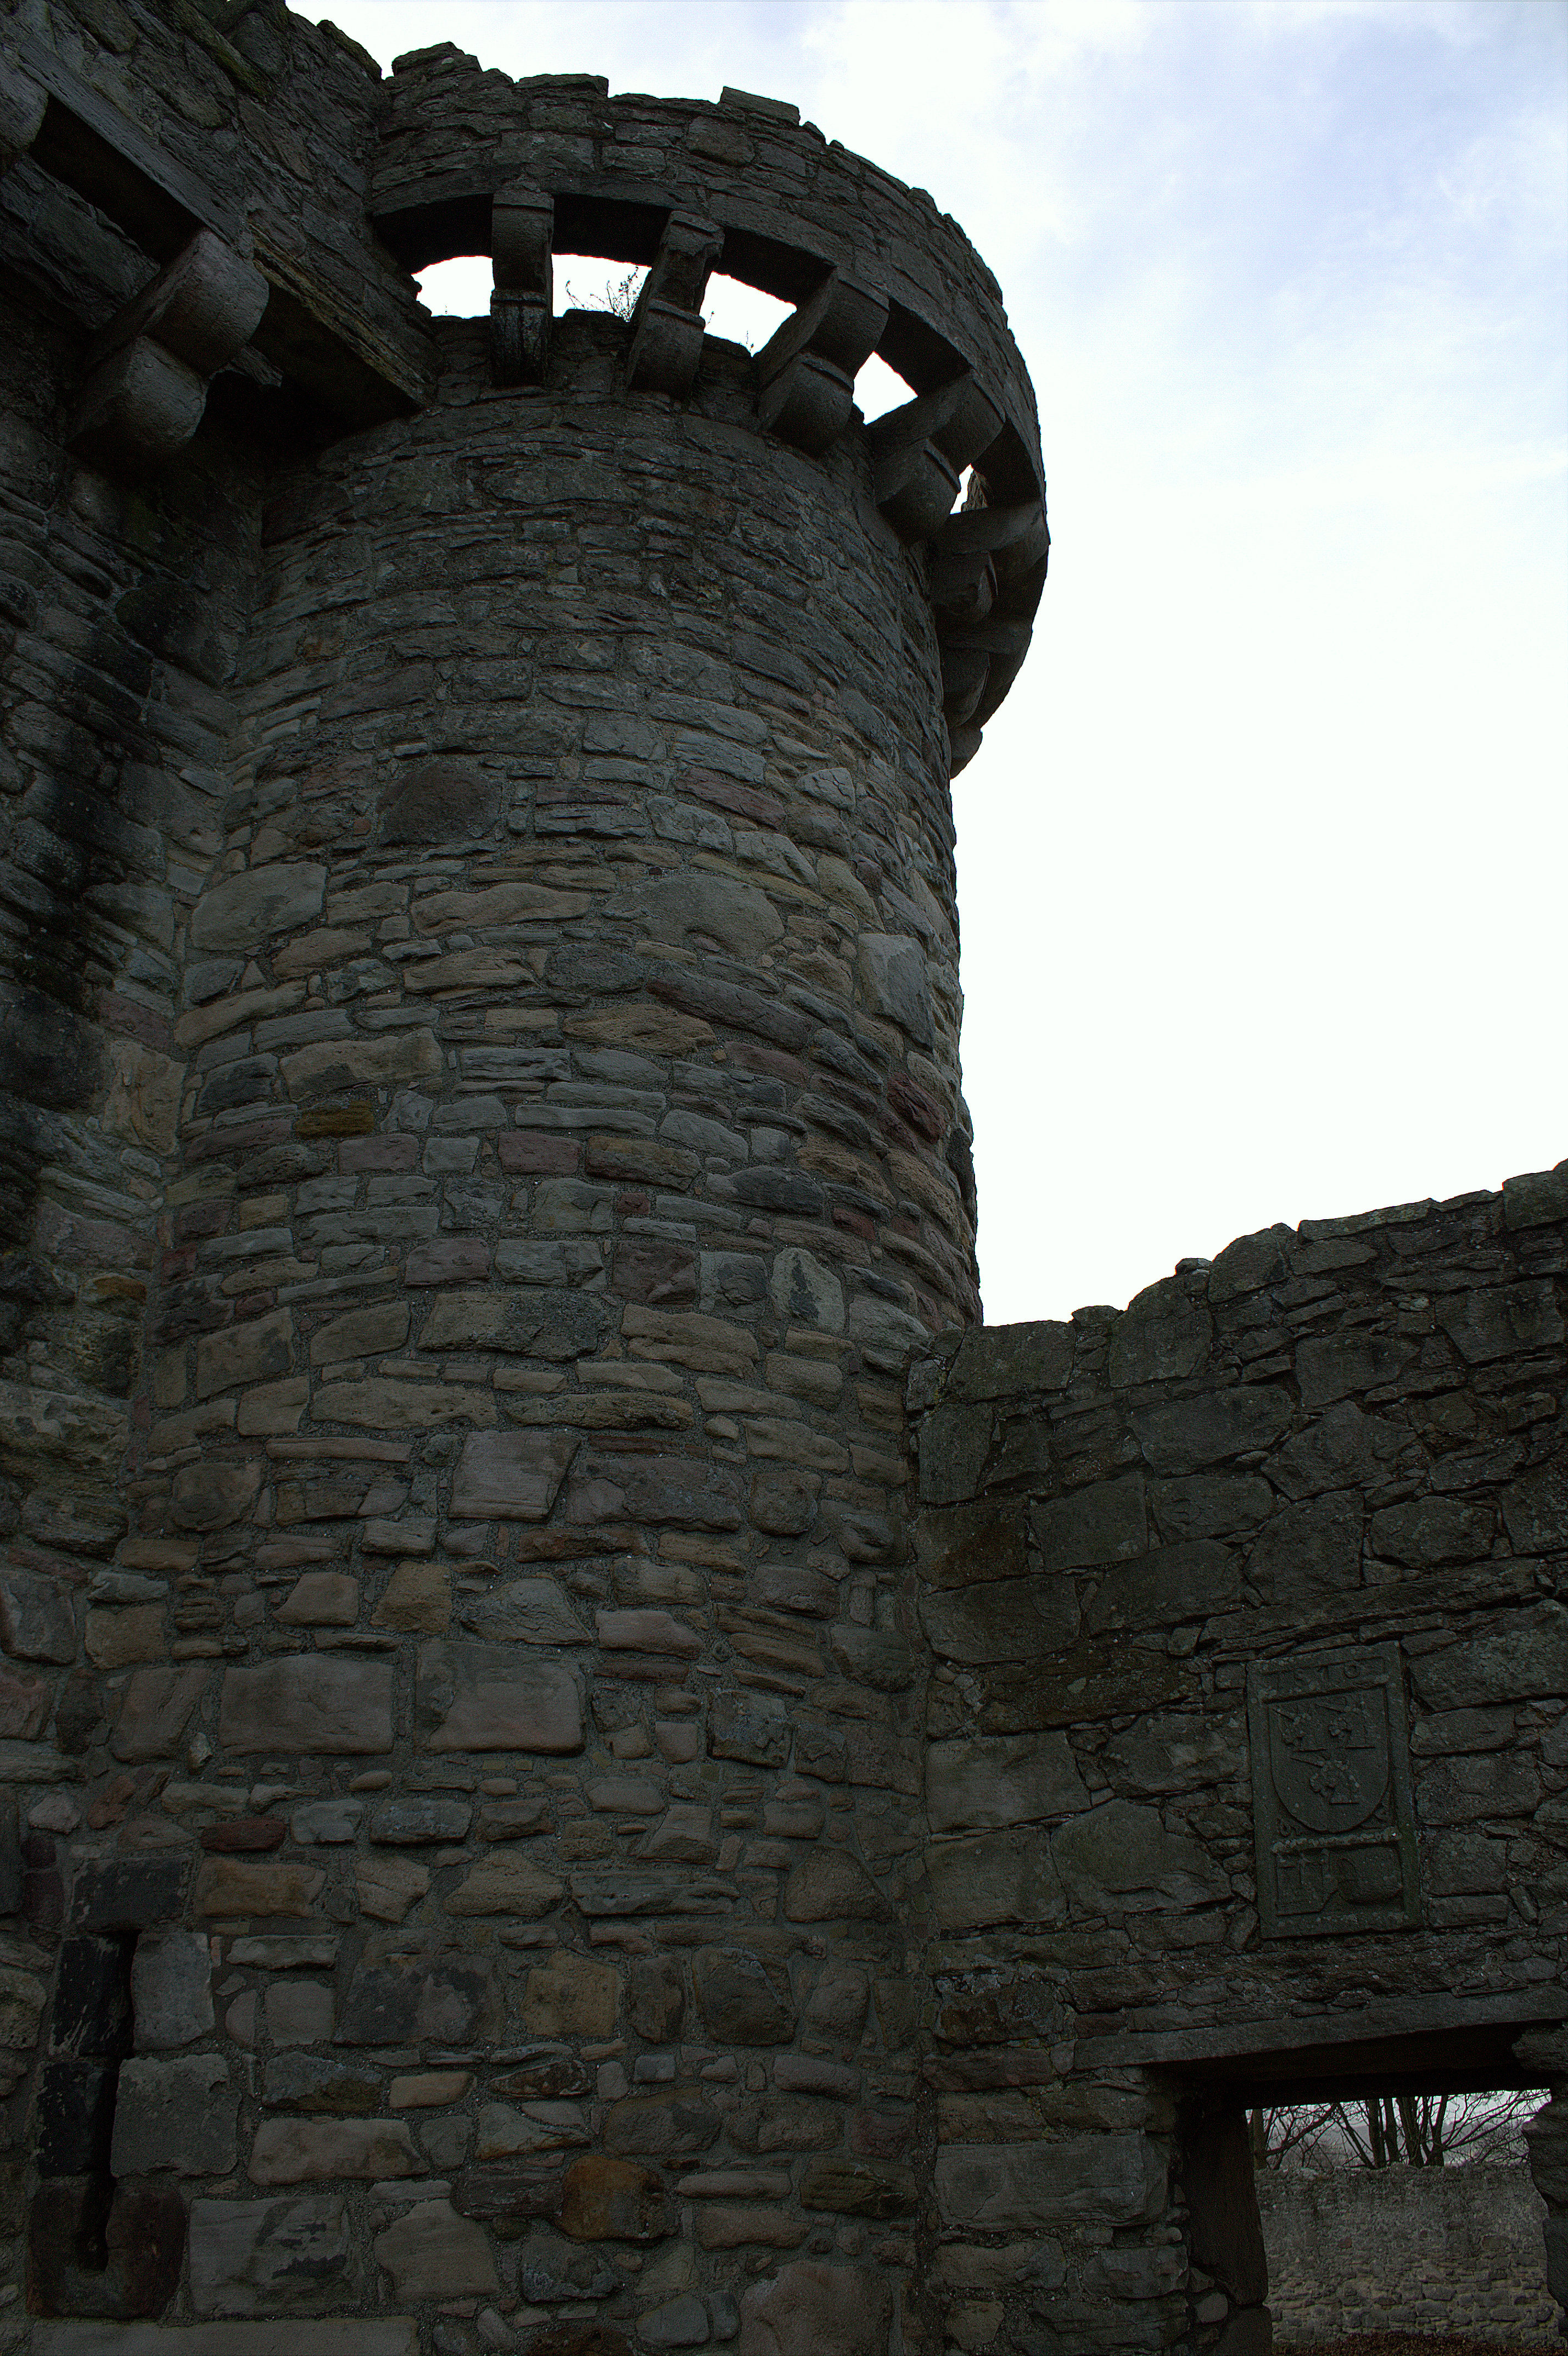 47. Craigmillar Castle, Edinburgh, Scotland